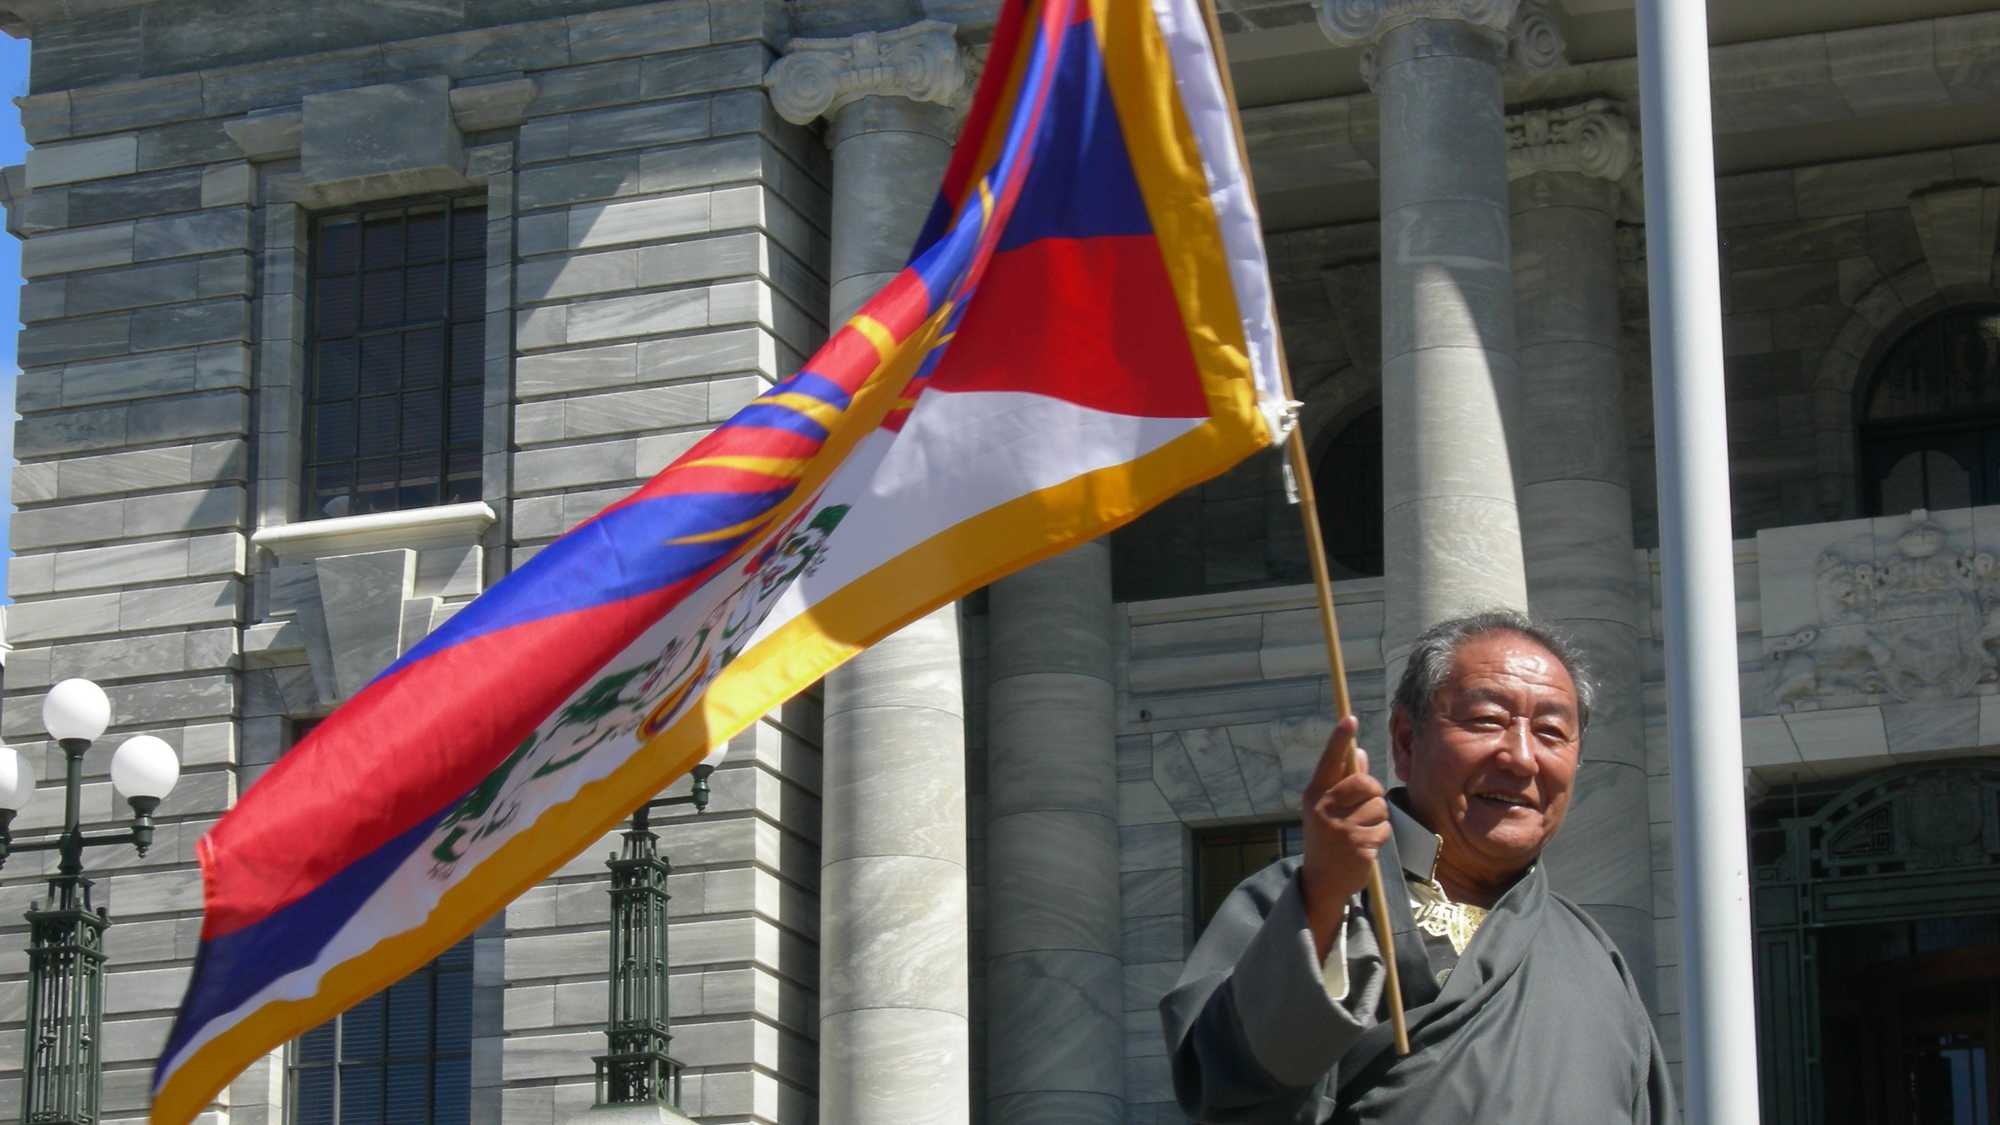 TEAM TIBET: Home away from Home (image 1)